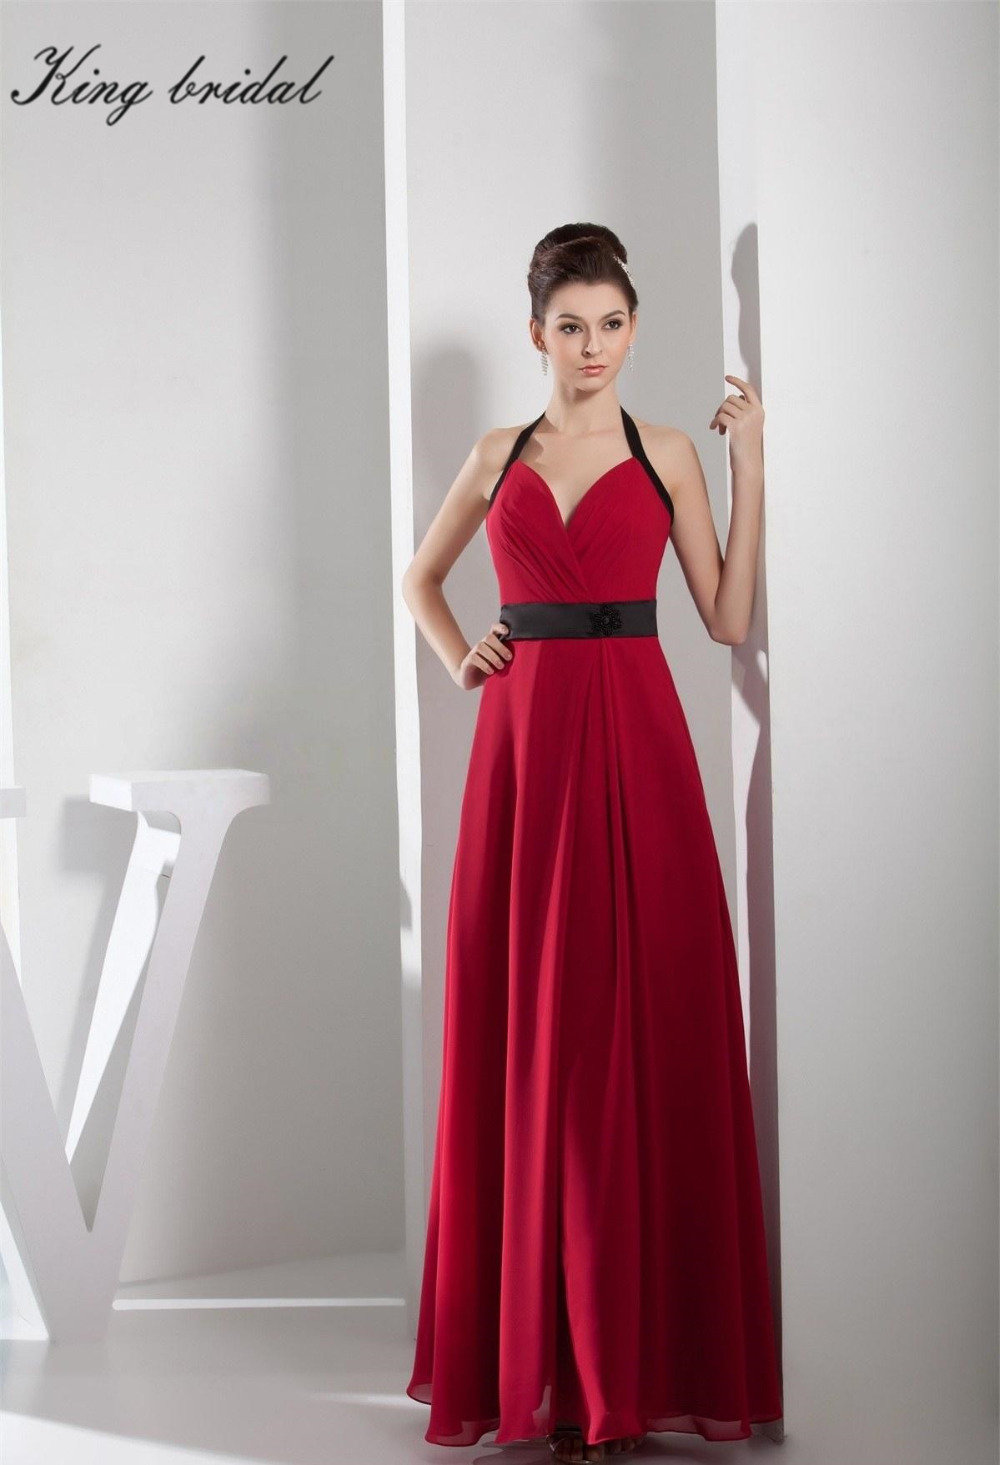 Compare Prices on Petite Long Prom Dresses- Online Shopping/Buy ...